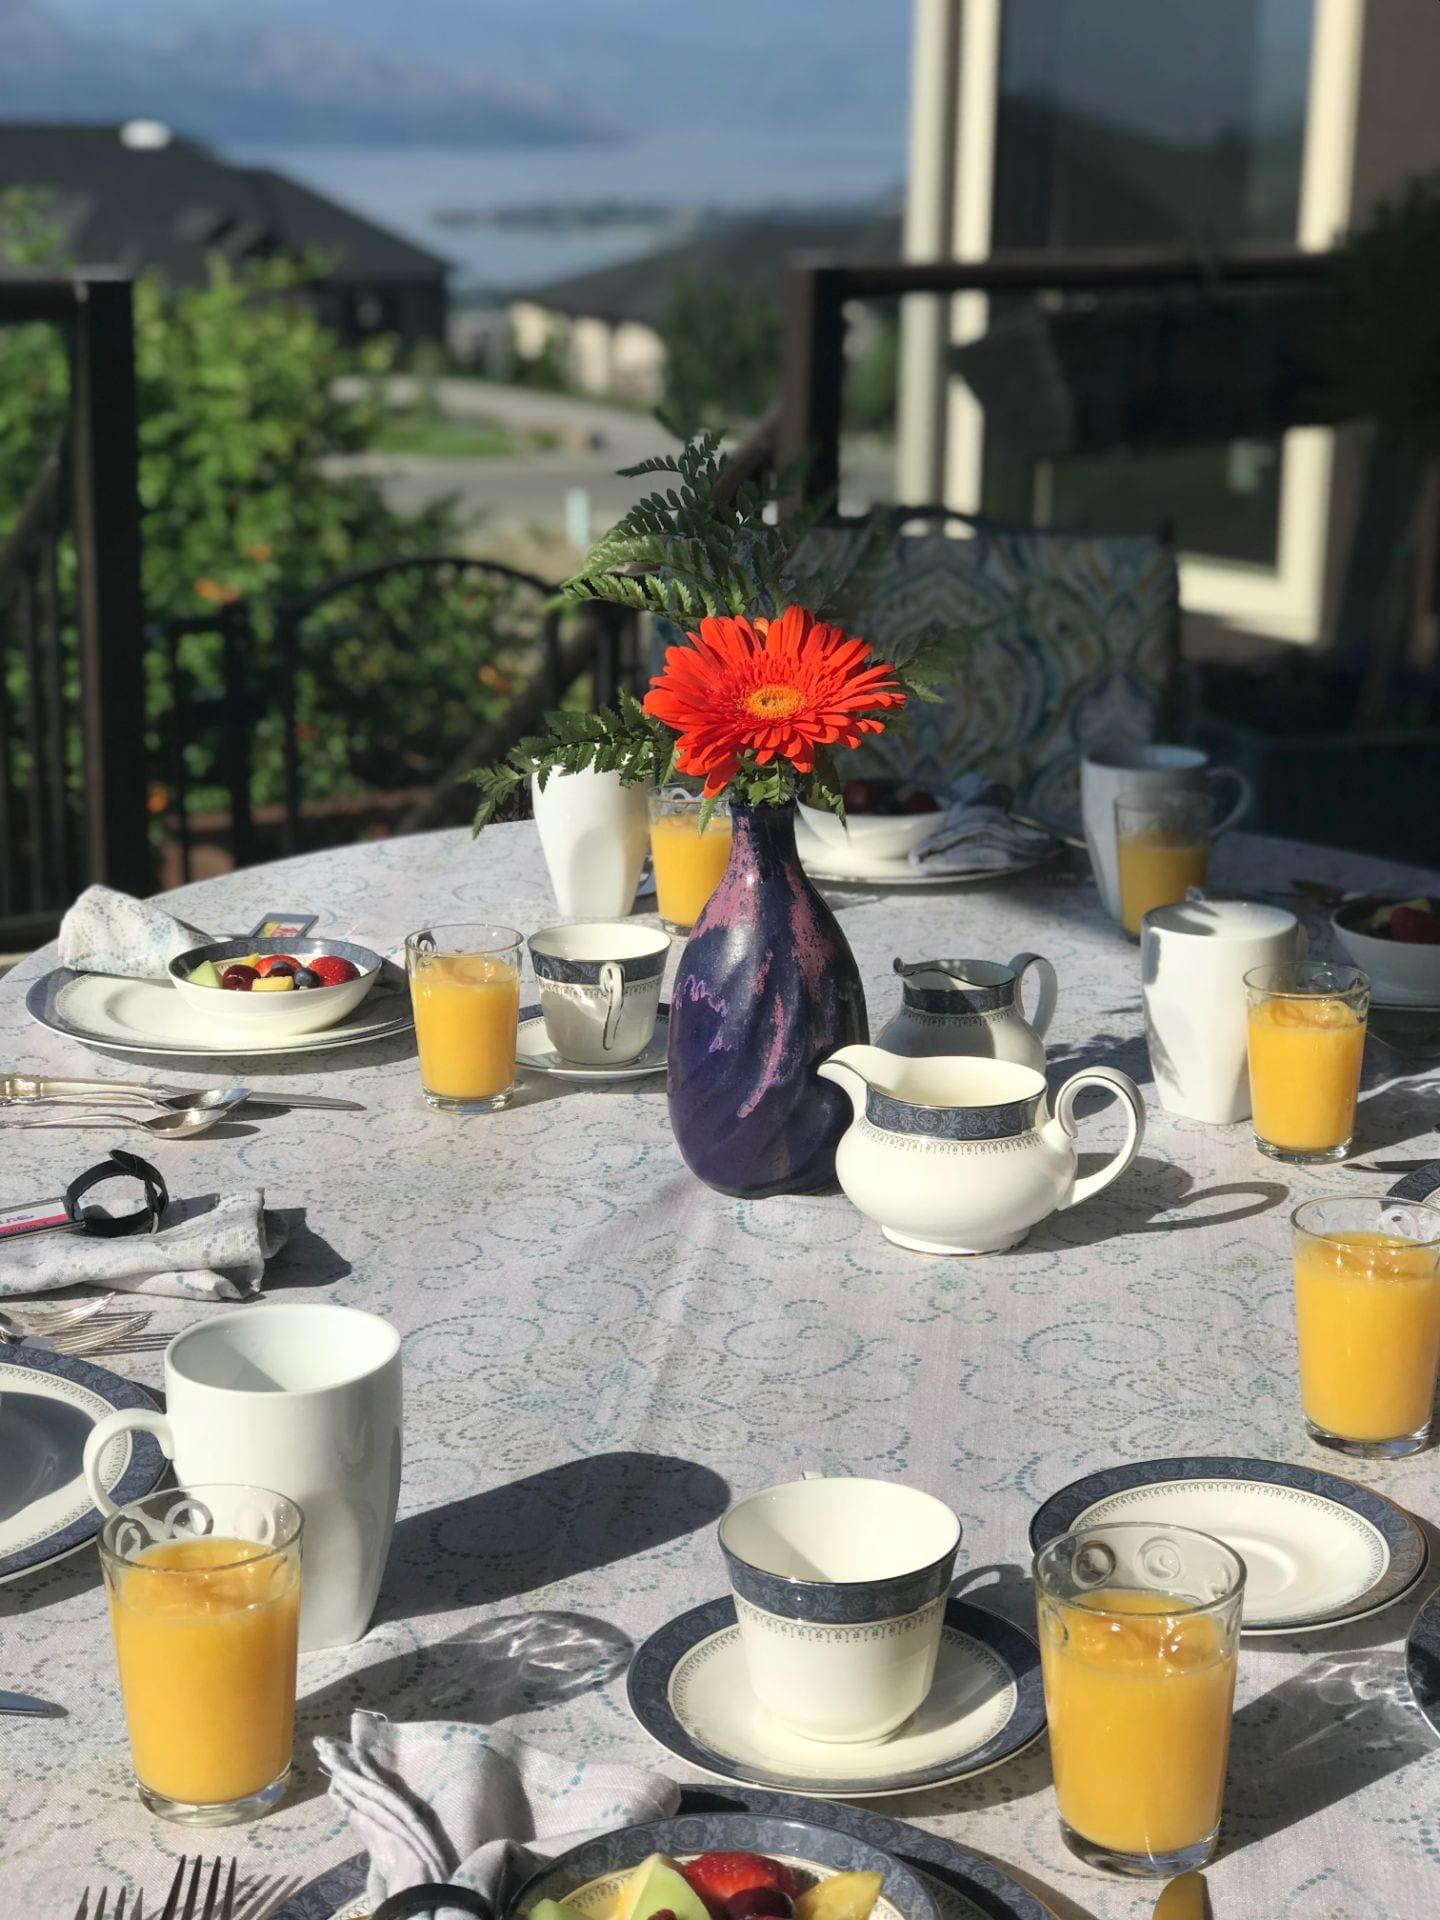 Breakfast Table at Cheers B&B with fruit salad, orange juice, and a floral arrangement